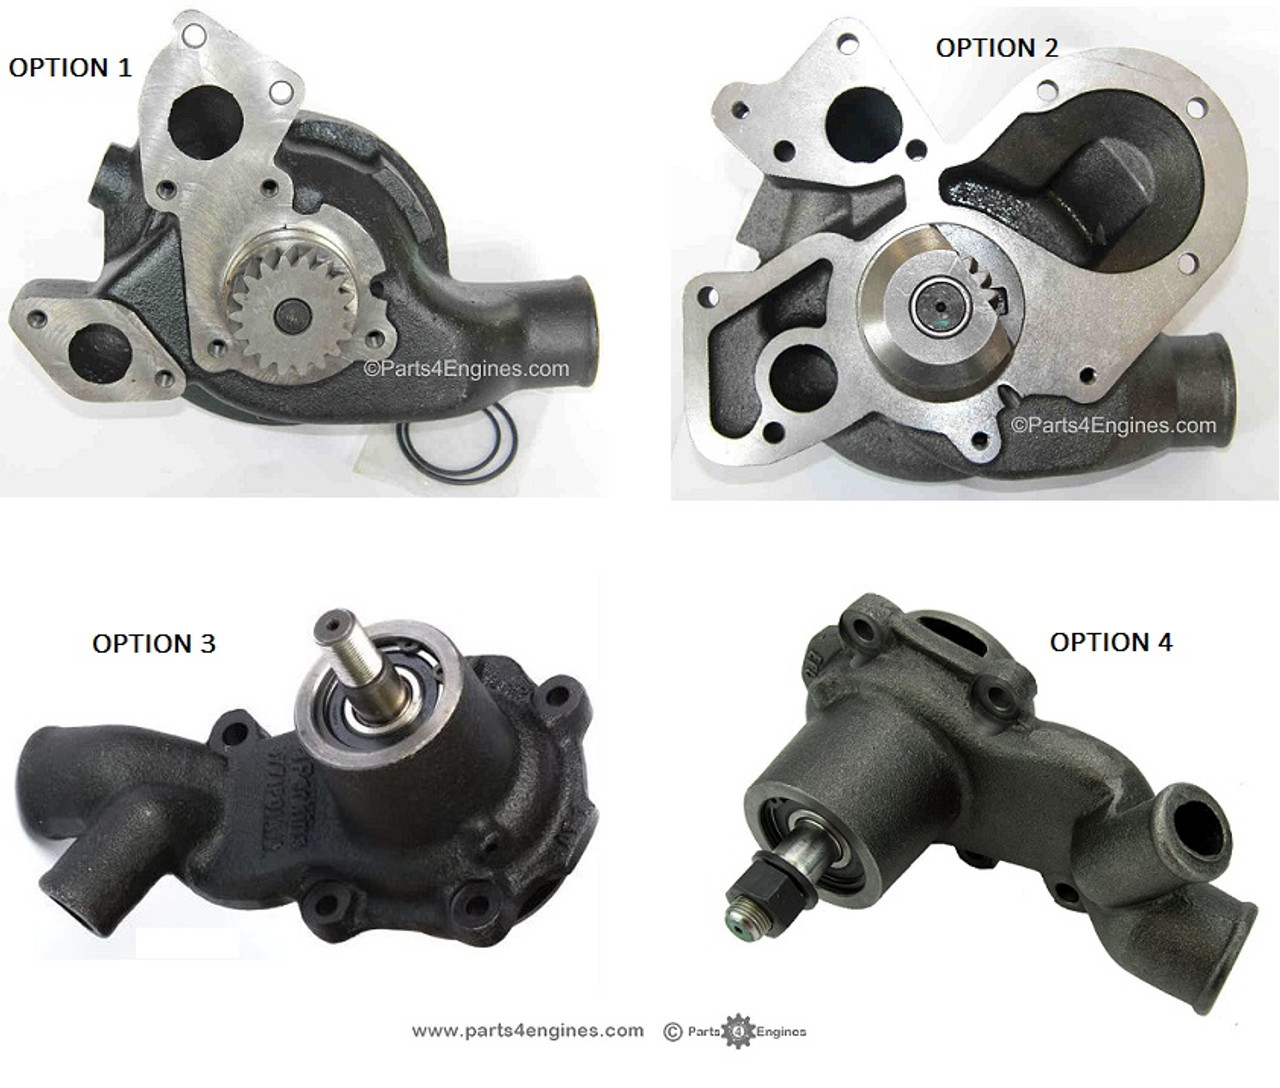 Perkins Phaser 1004 all water pumps options - parts4engines.com